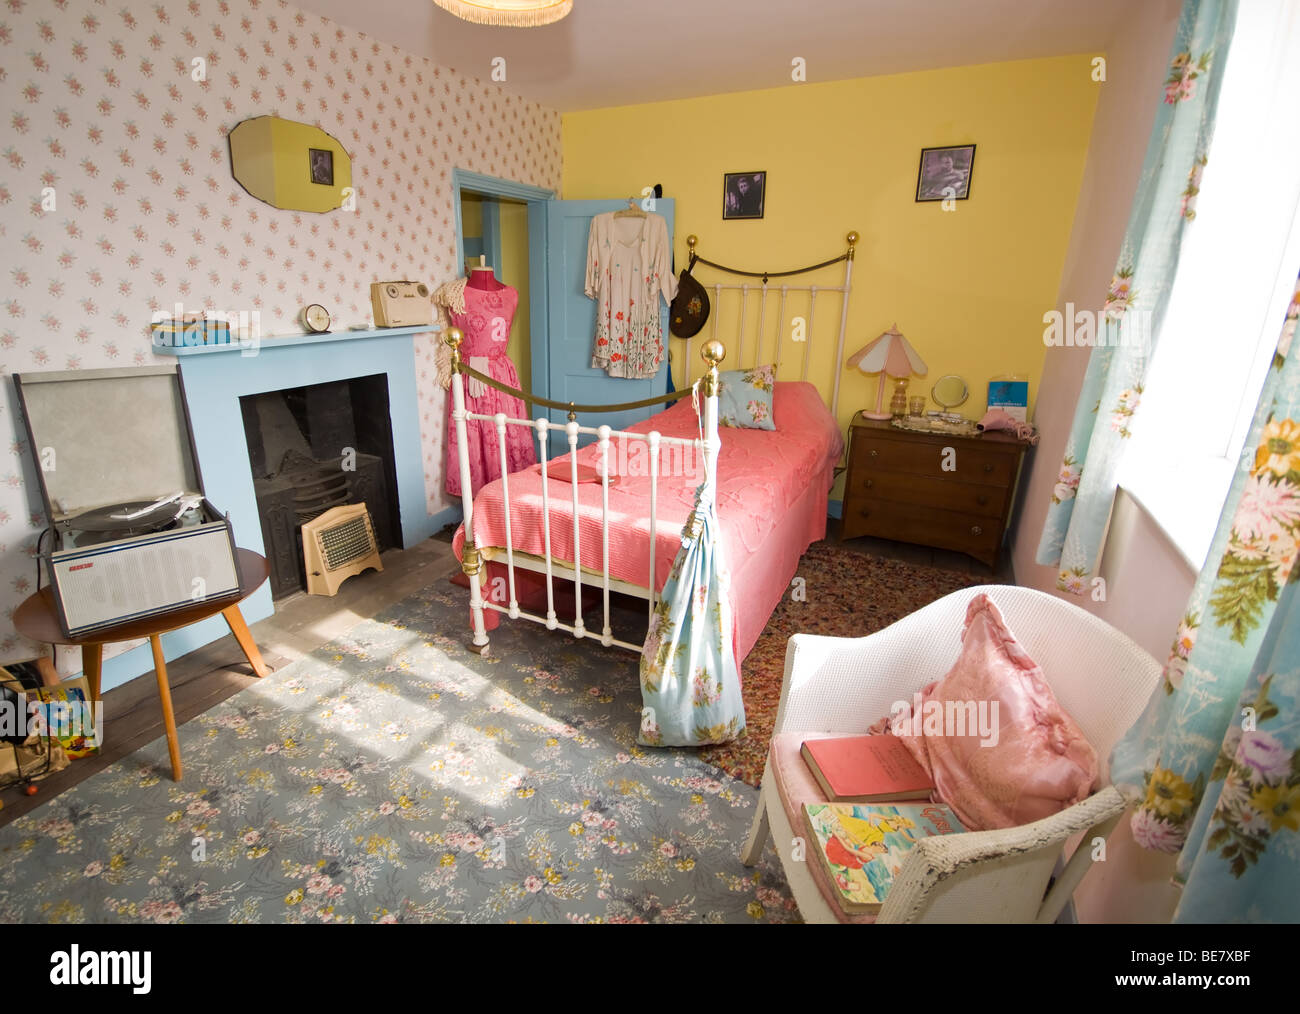 1950s Style Teenage Bedroom Stock Photo Royalty Free